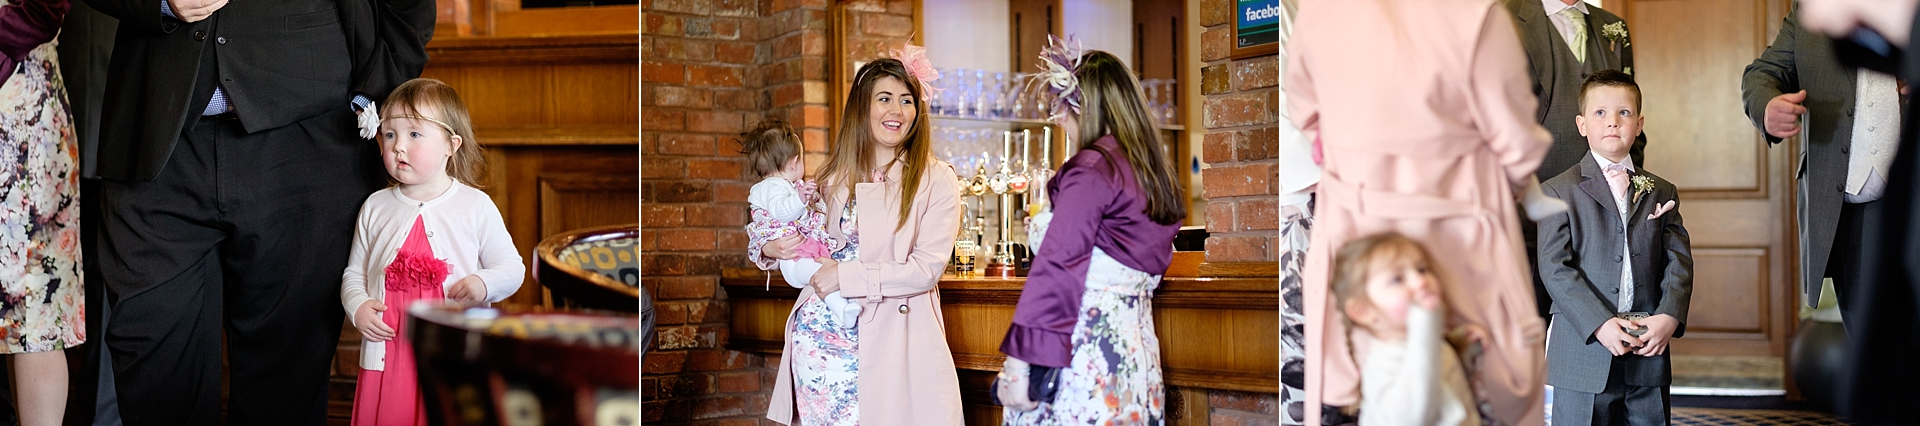 wedding photographer moat house acton trussell stafford 3.jpg